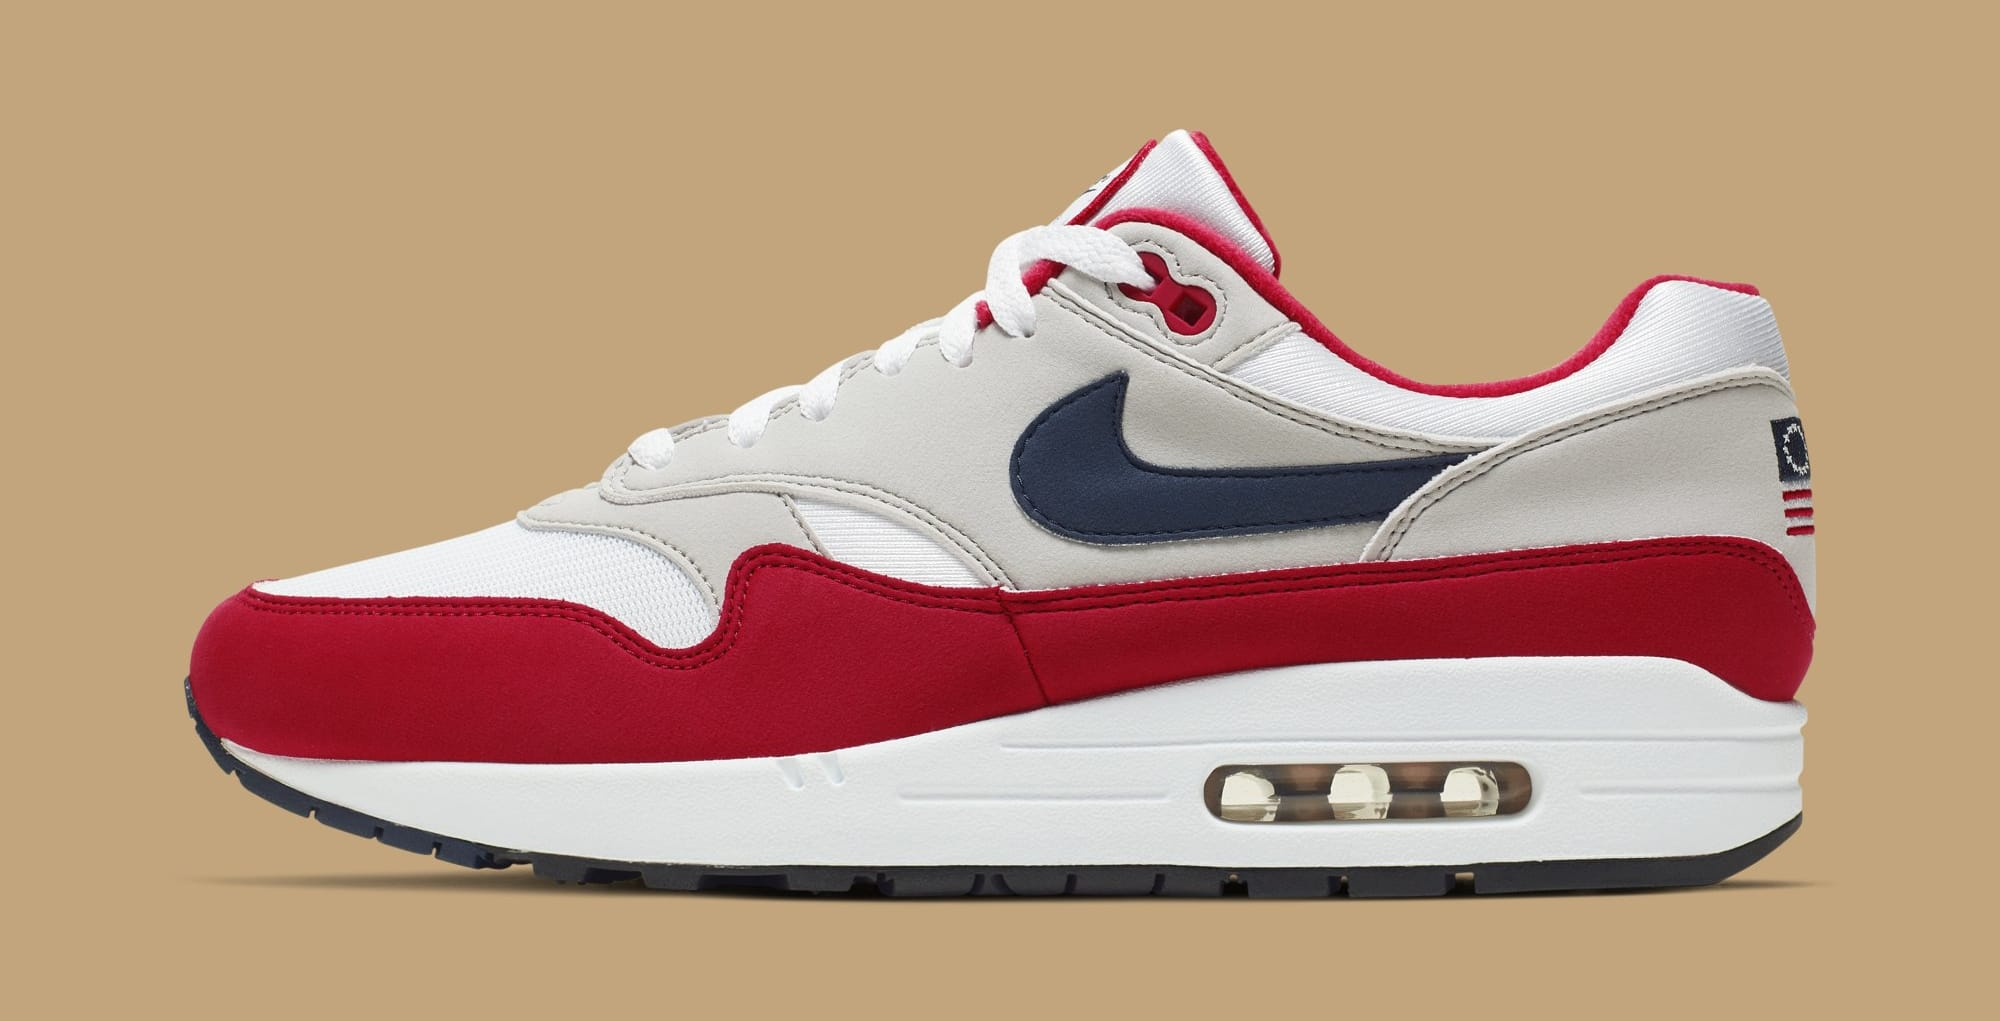 Collector 'fourth July' Nike Cj4283 1 Of 100 Max Air DateSole Release xBoCdreW